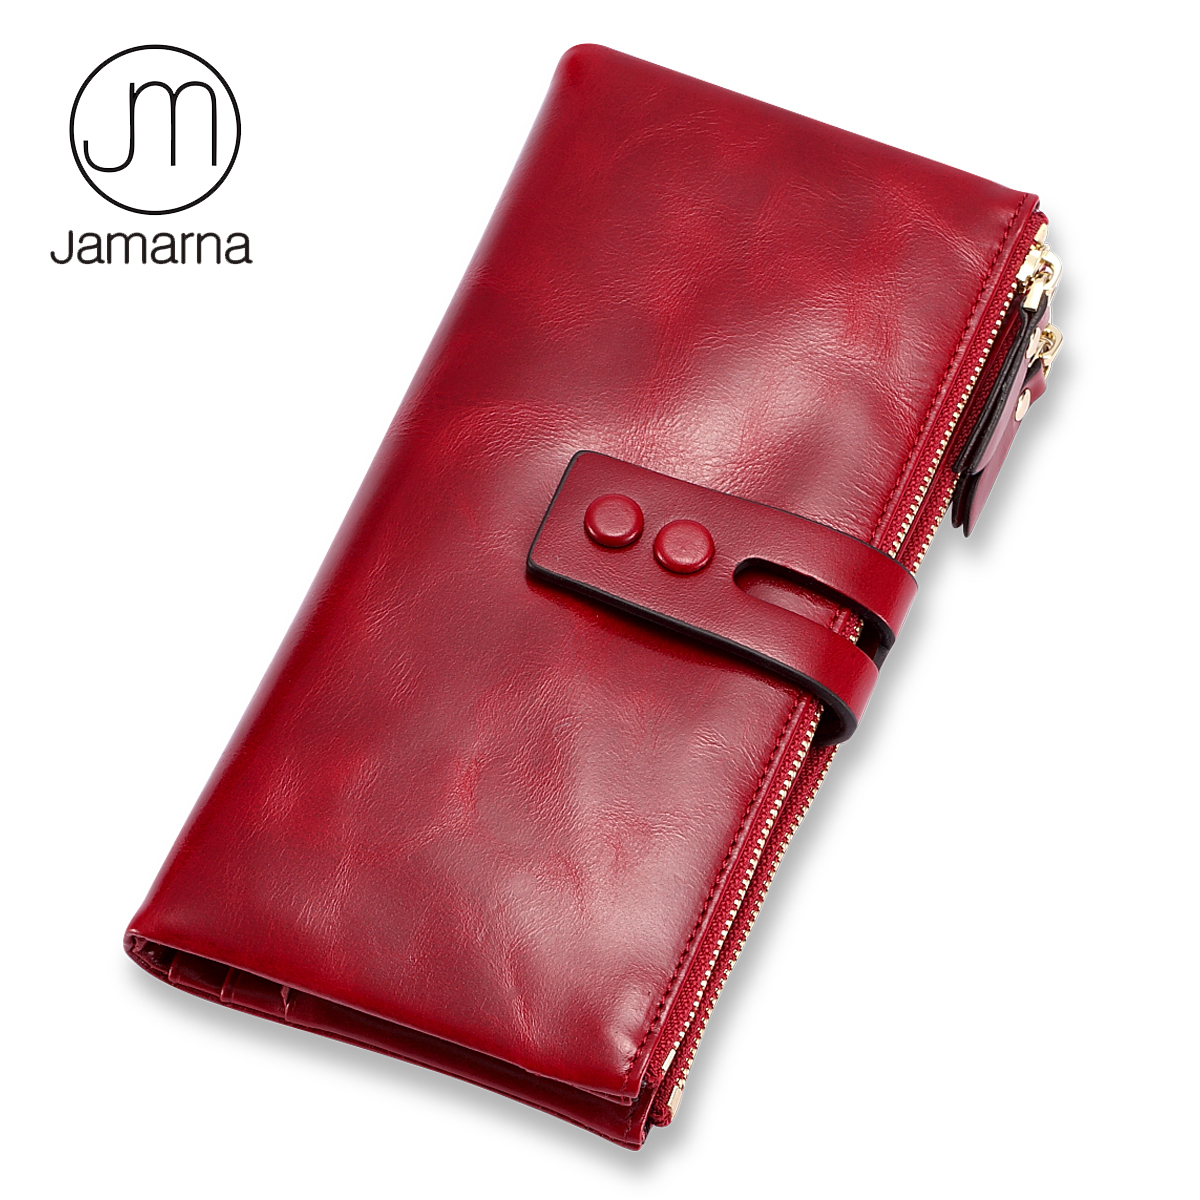 Jamarna Wallet Female Red Leather Women Wallets With Zipper Oil Wax Credit Card Holder Coin Wallet Double Zipper Design